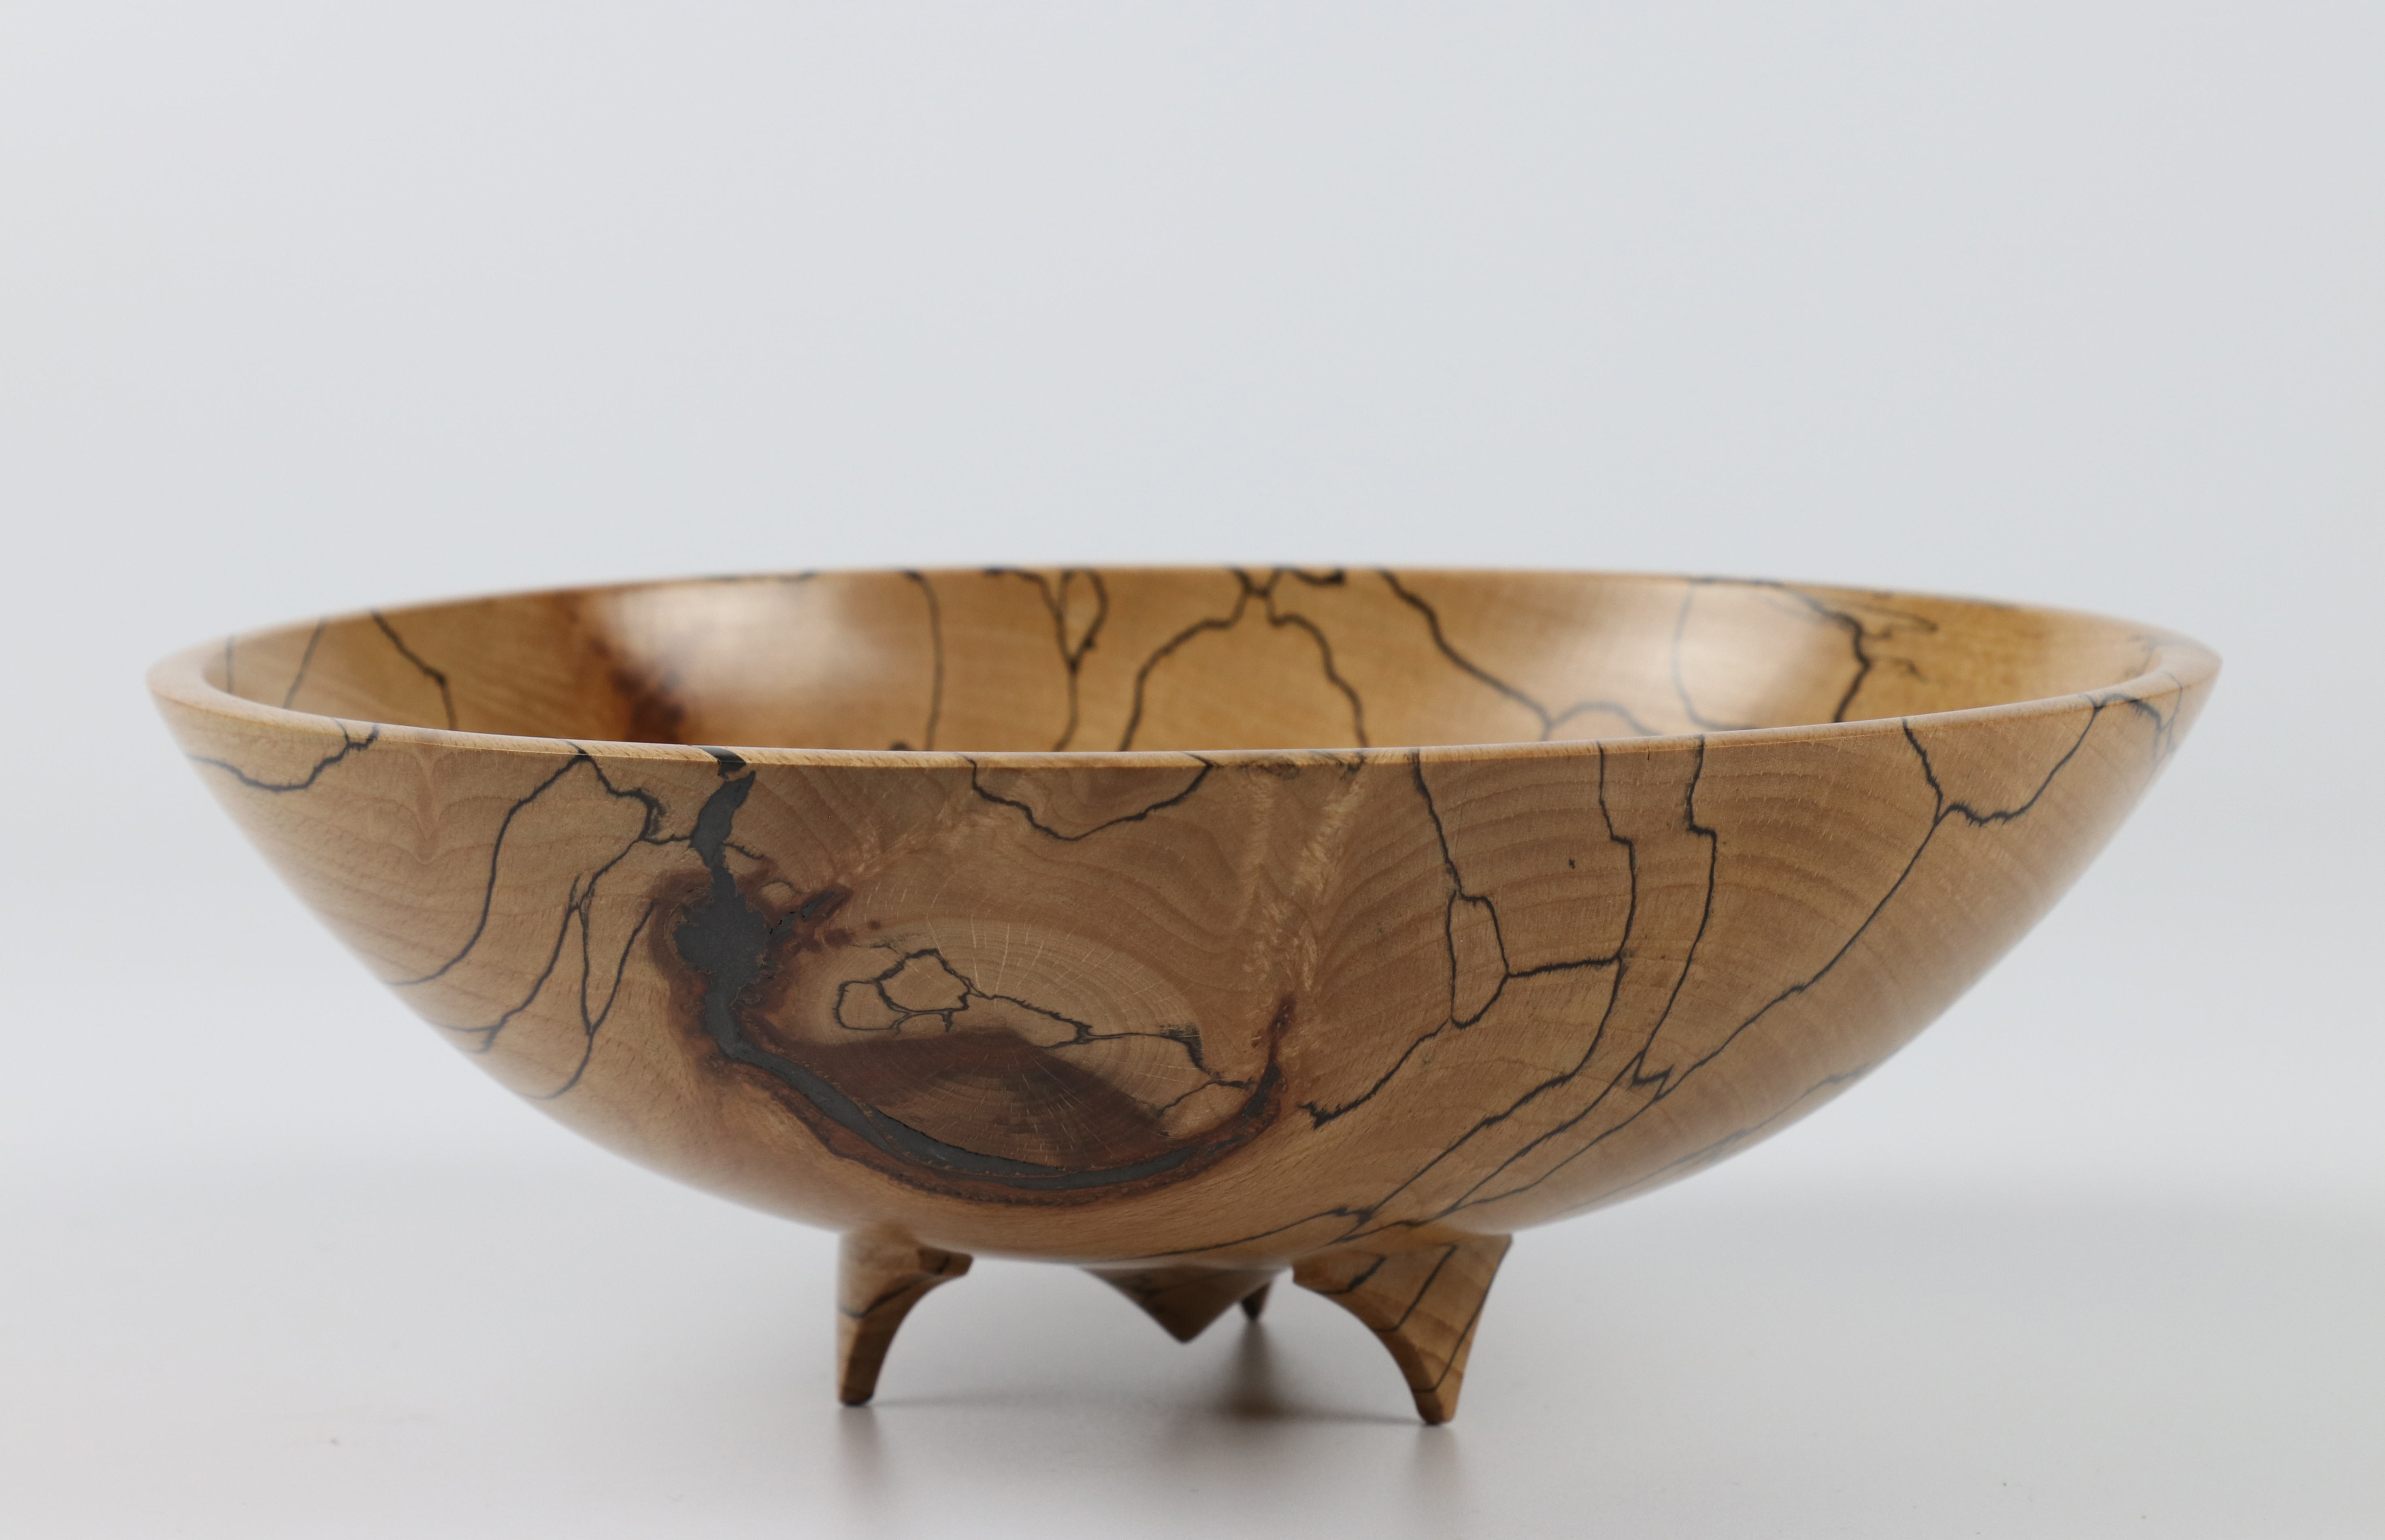 Lot 71 - Mary Ashton (UK) spalted beech footed bowl 8x20cm. Signed